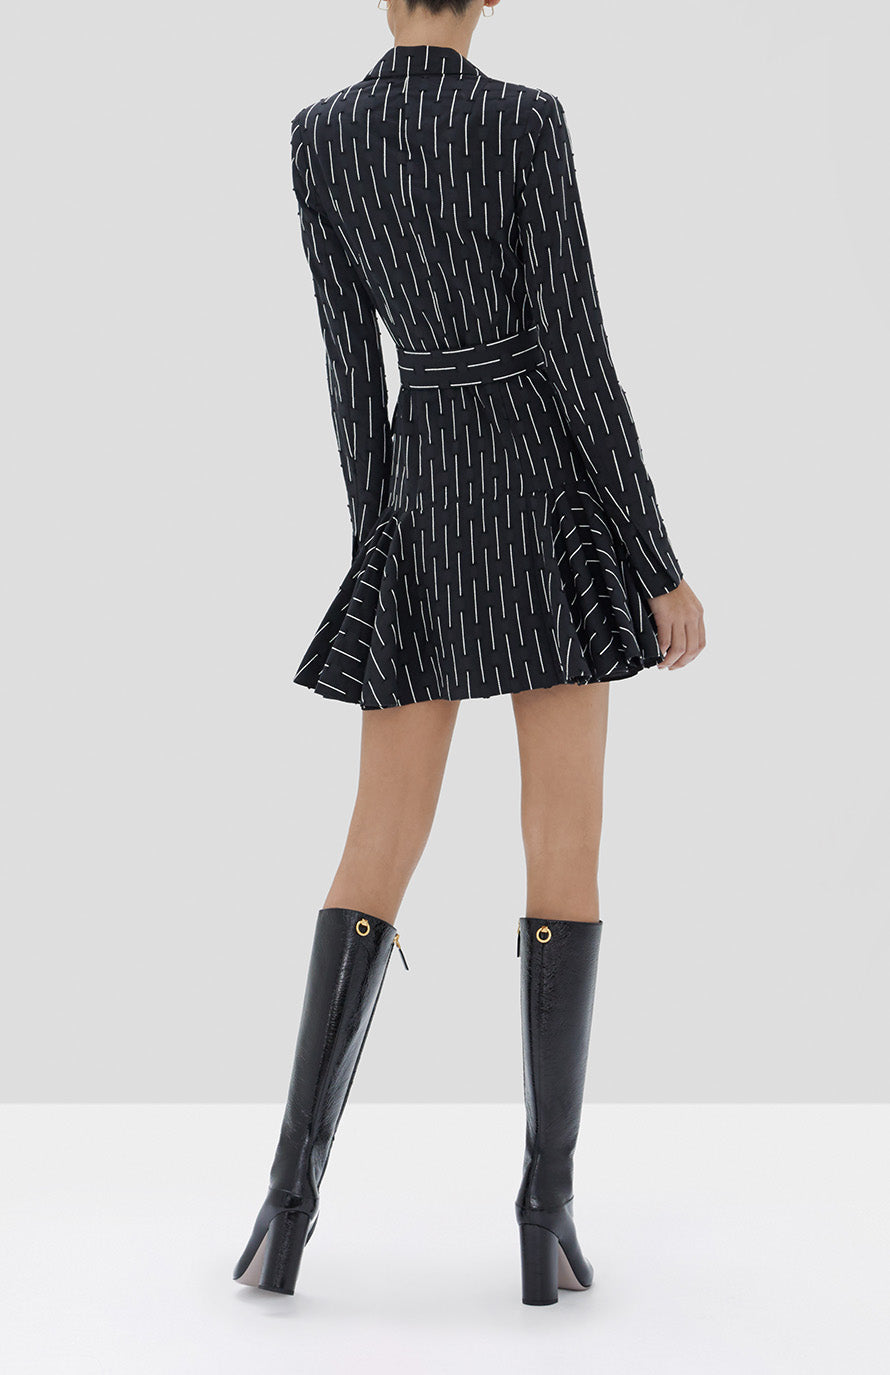 Alexis Kaeden Dress in Black Embroidered Stripes - Rear View